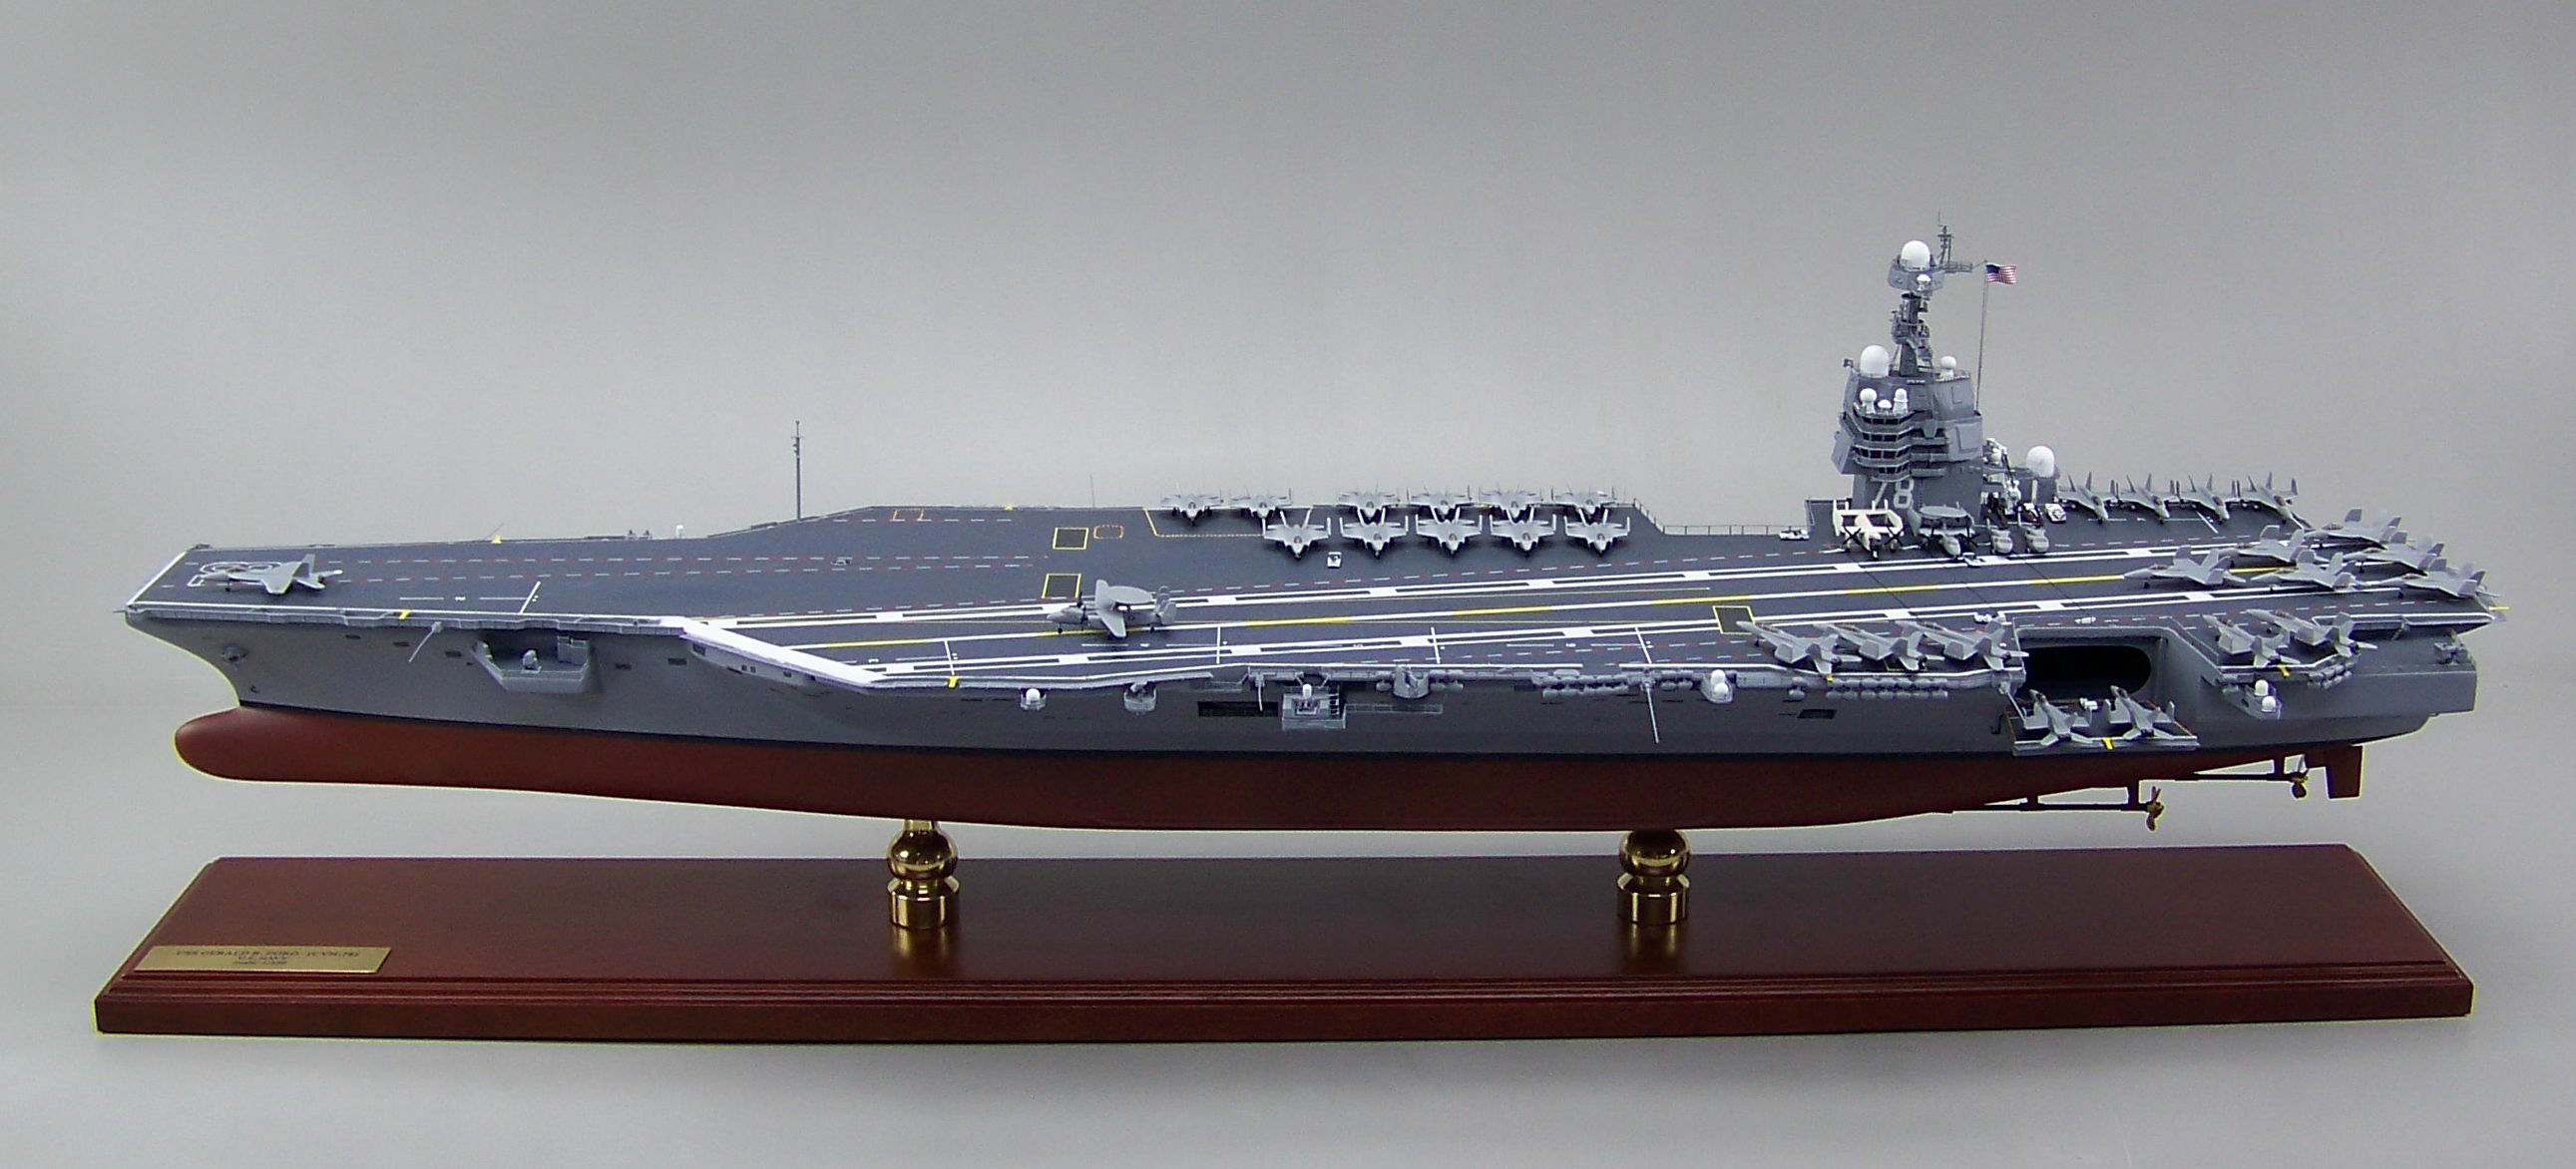 Sd Model Makers Expands Naval Warship Model Offering